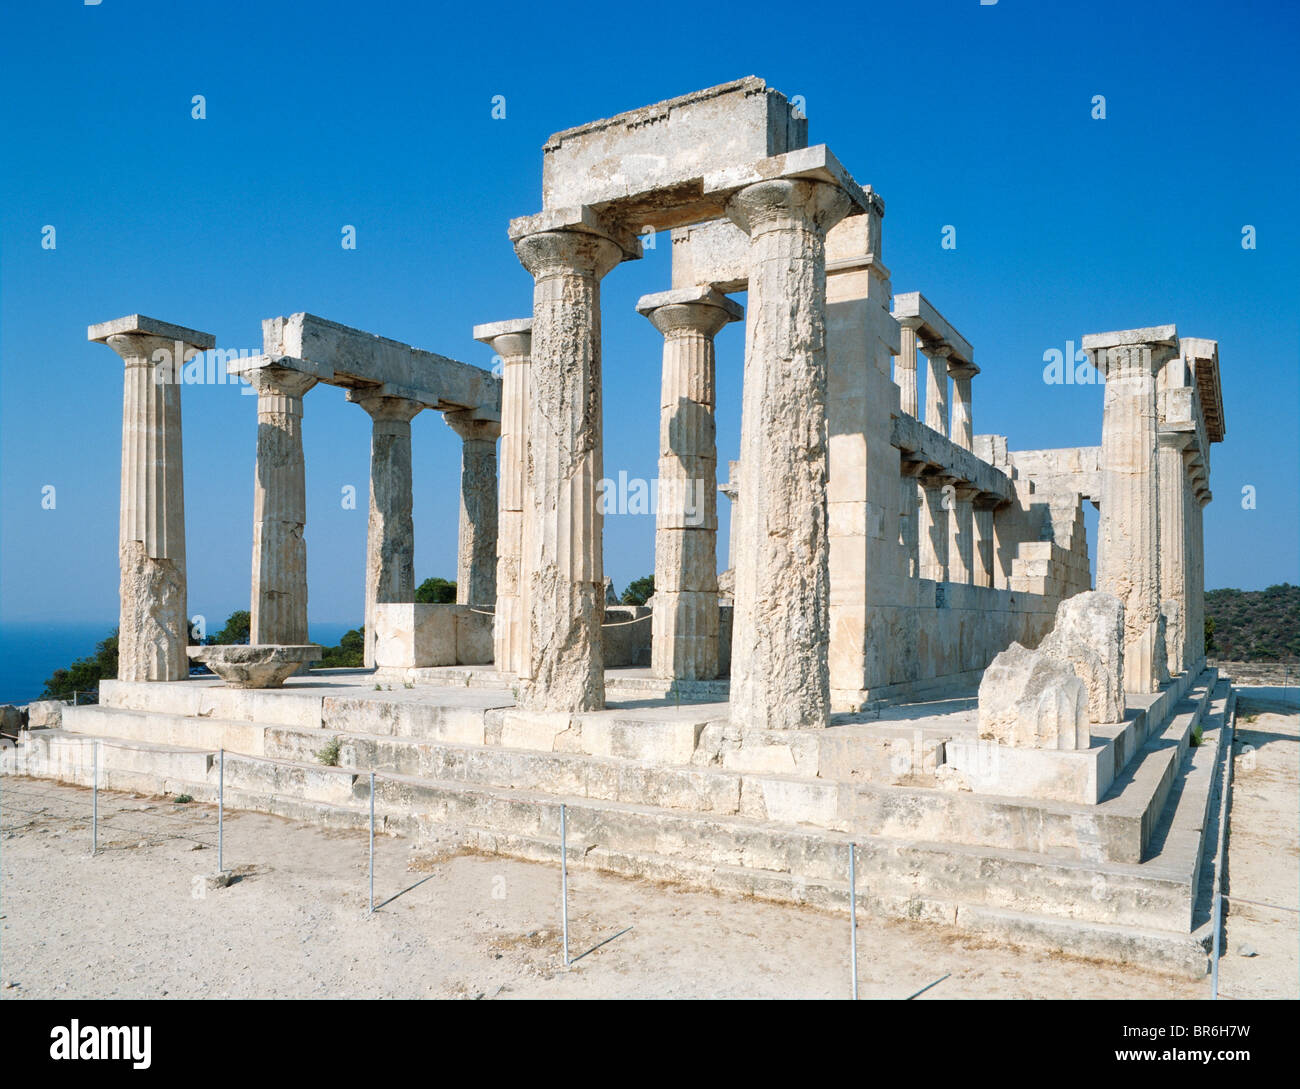 Ruins of the Temple of Afea, Aegina, Saronic Islands, Greece - Stock Image